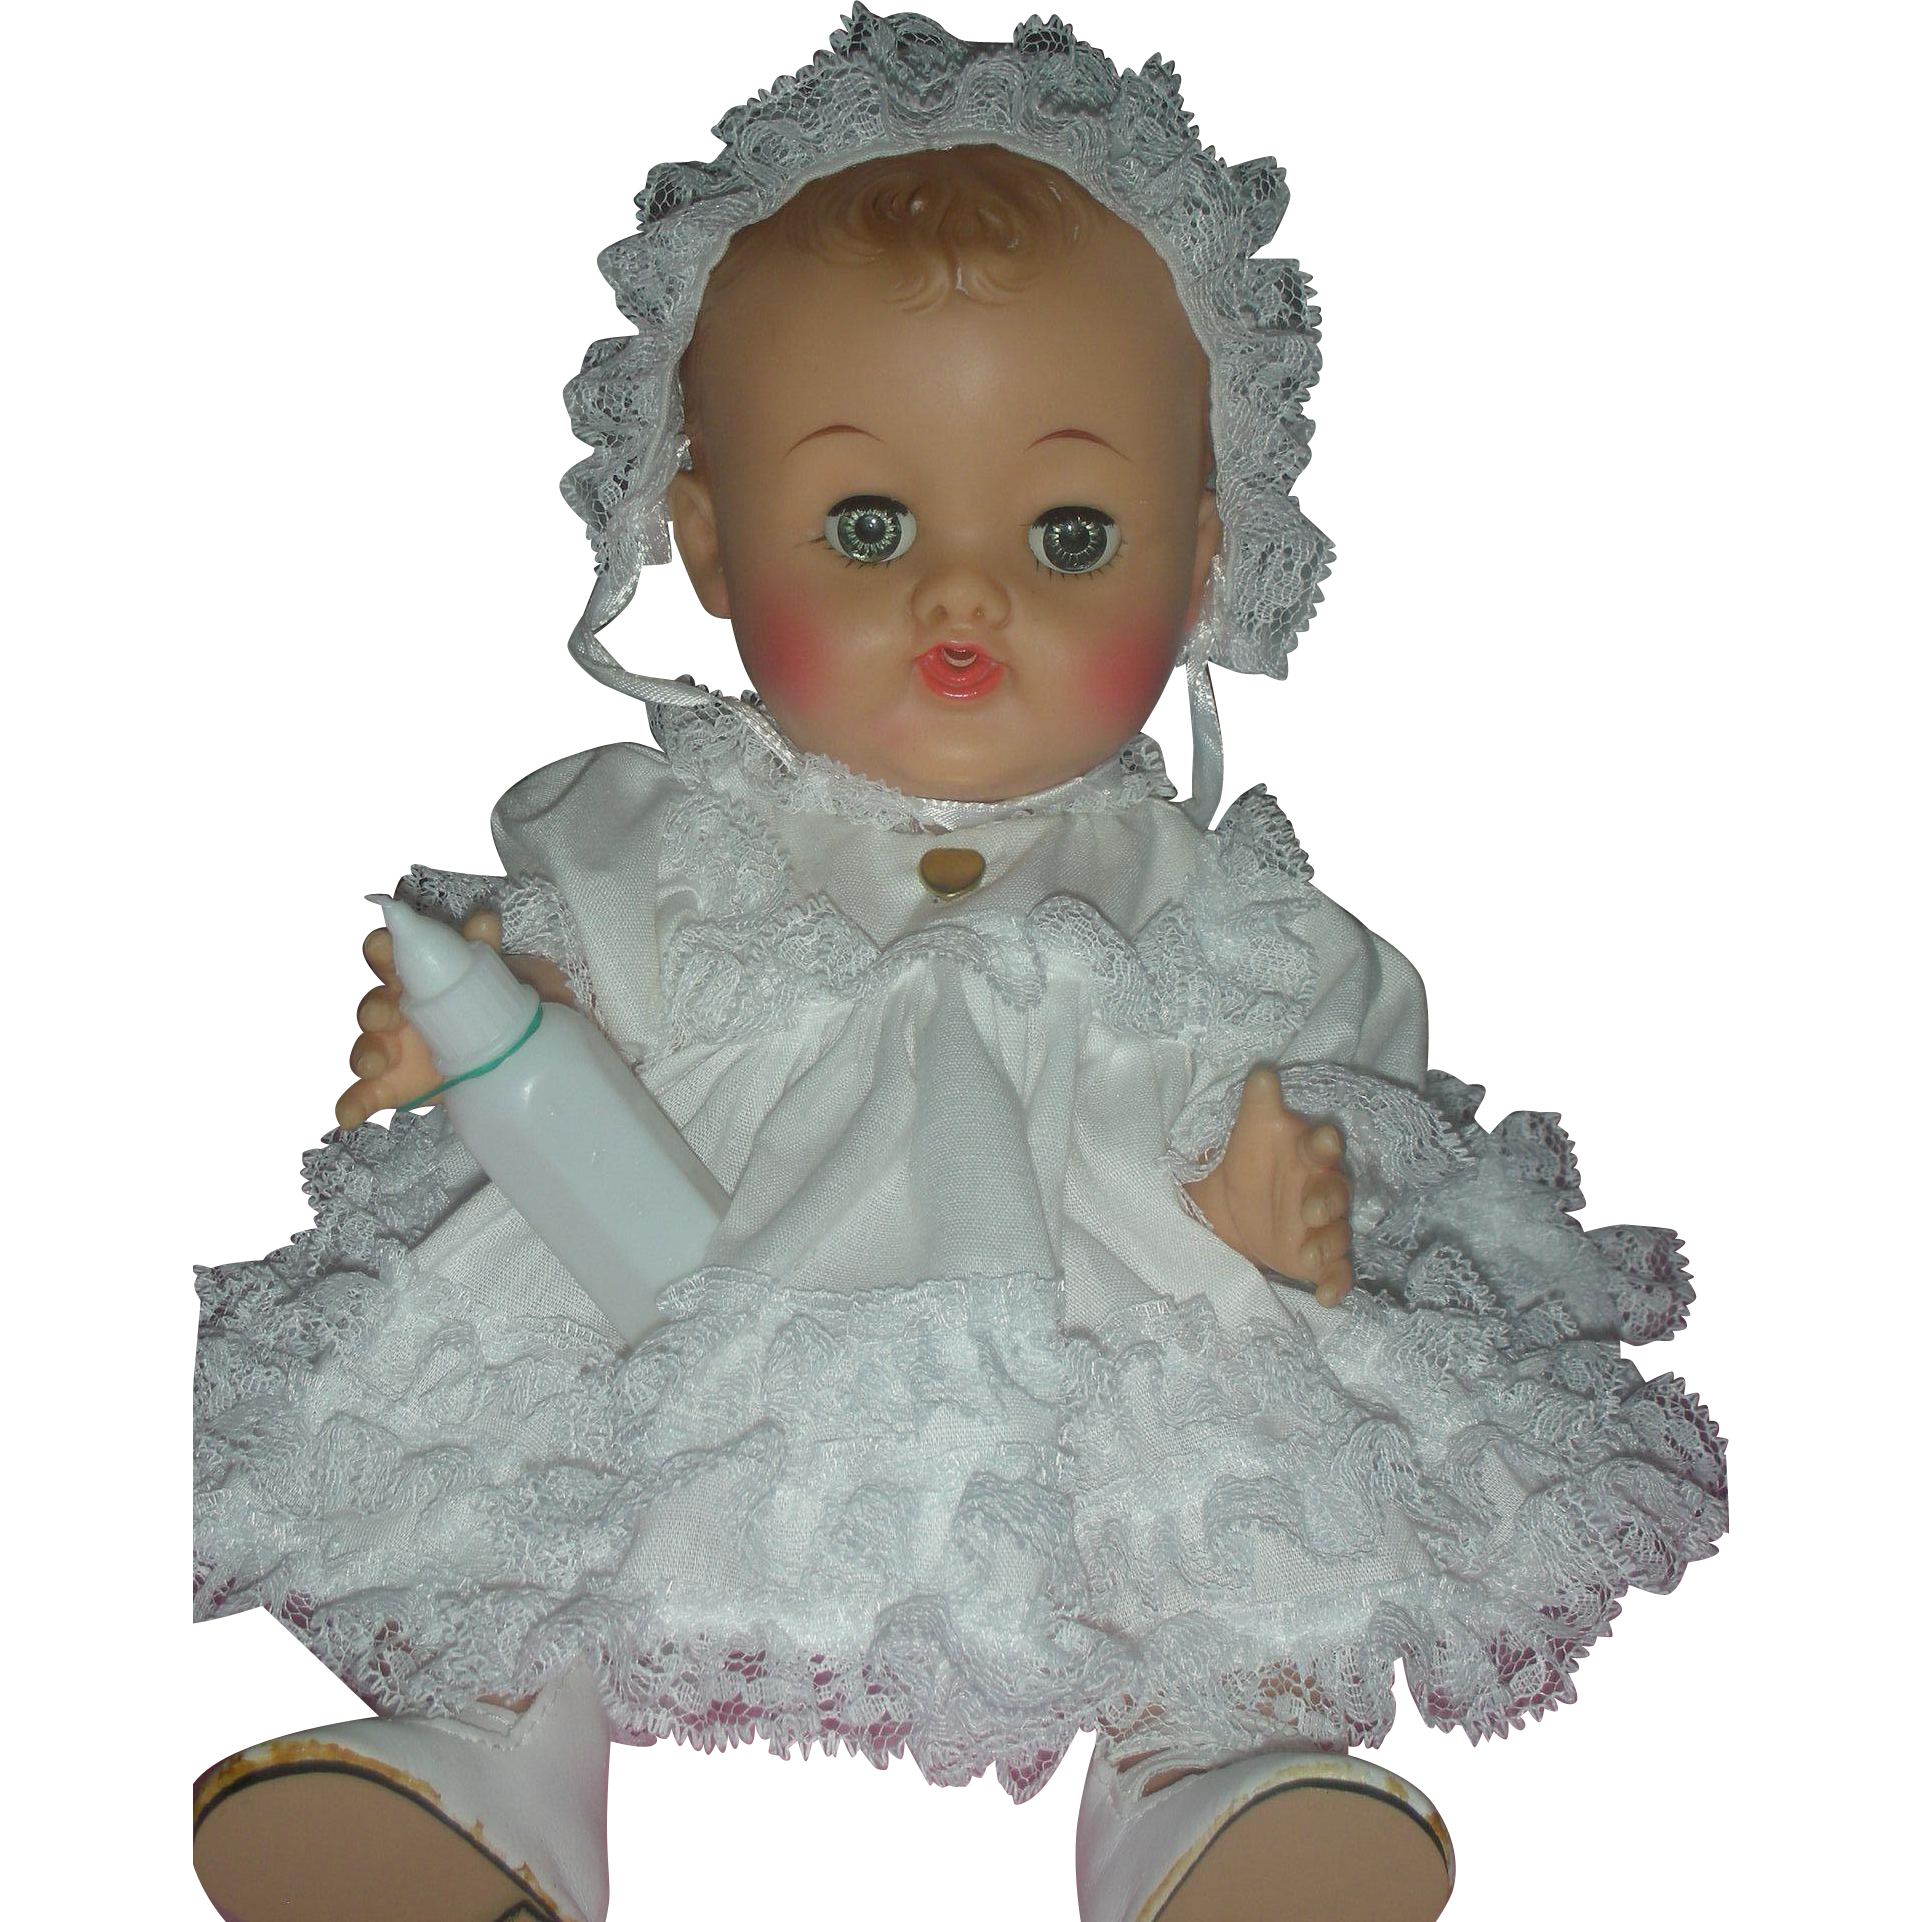 Vintage Ideal Molded Hair Drink and Wet Baby Doll 1950's Vinyl Dolls